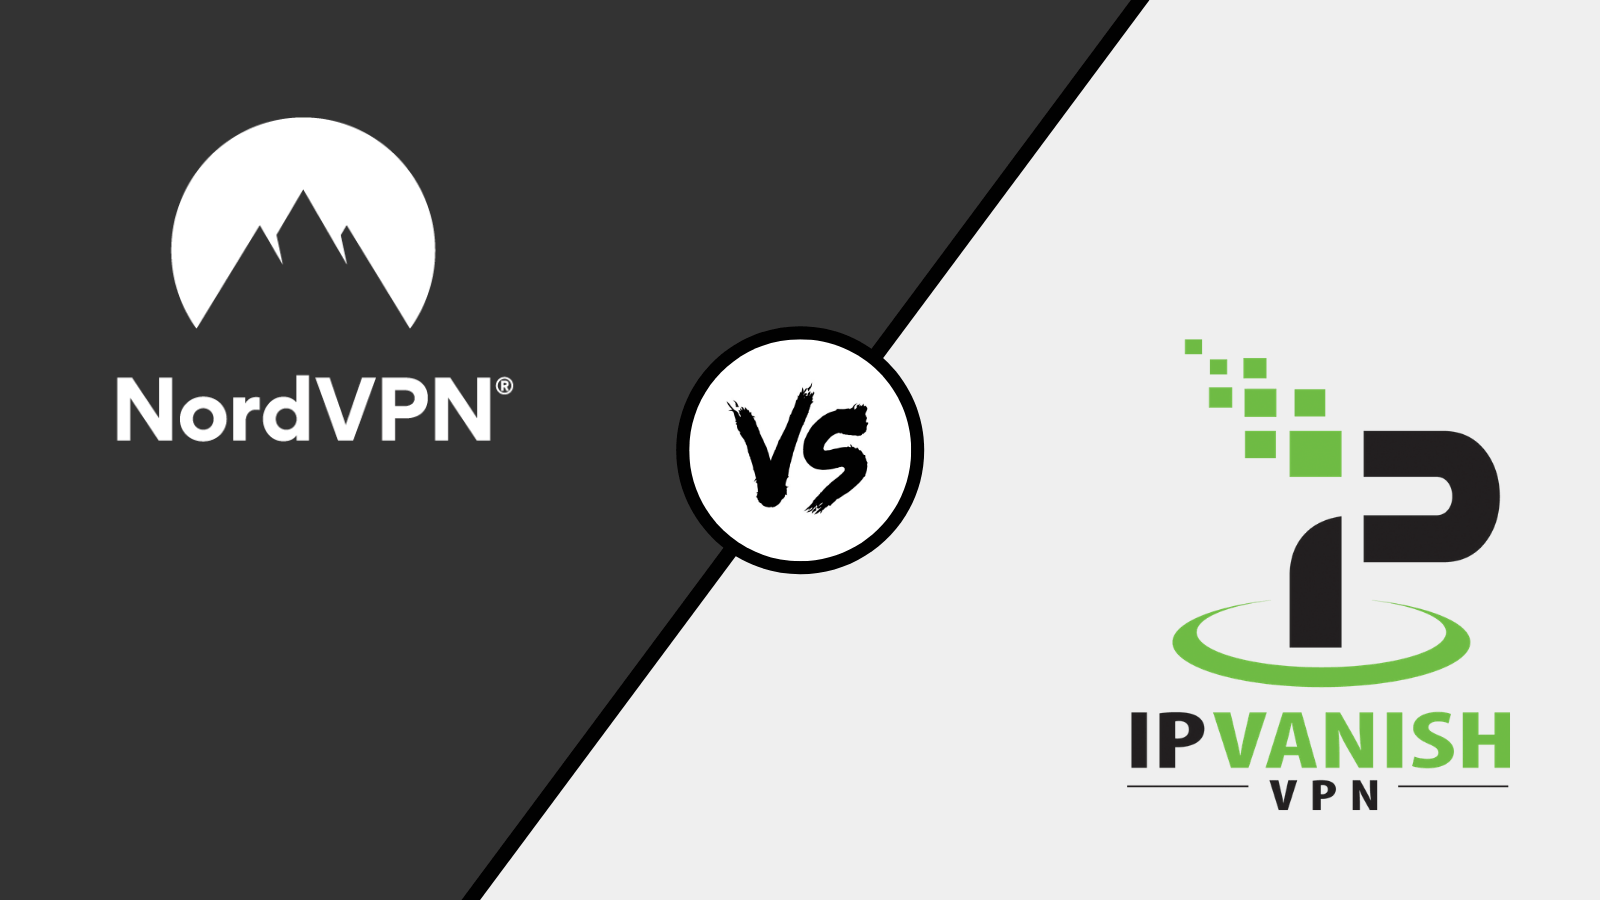 IPVanish vs NordVPN (2019) - The Battle of The Most Popular